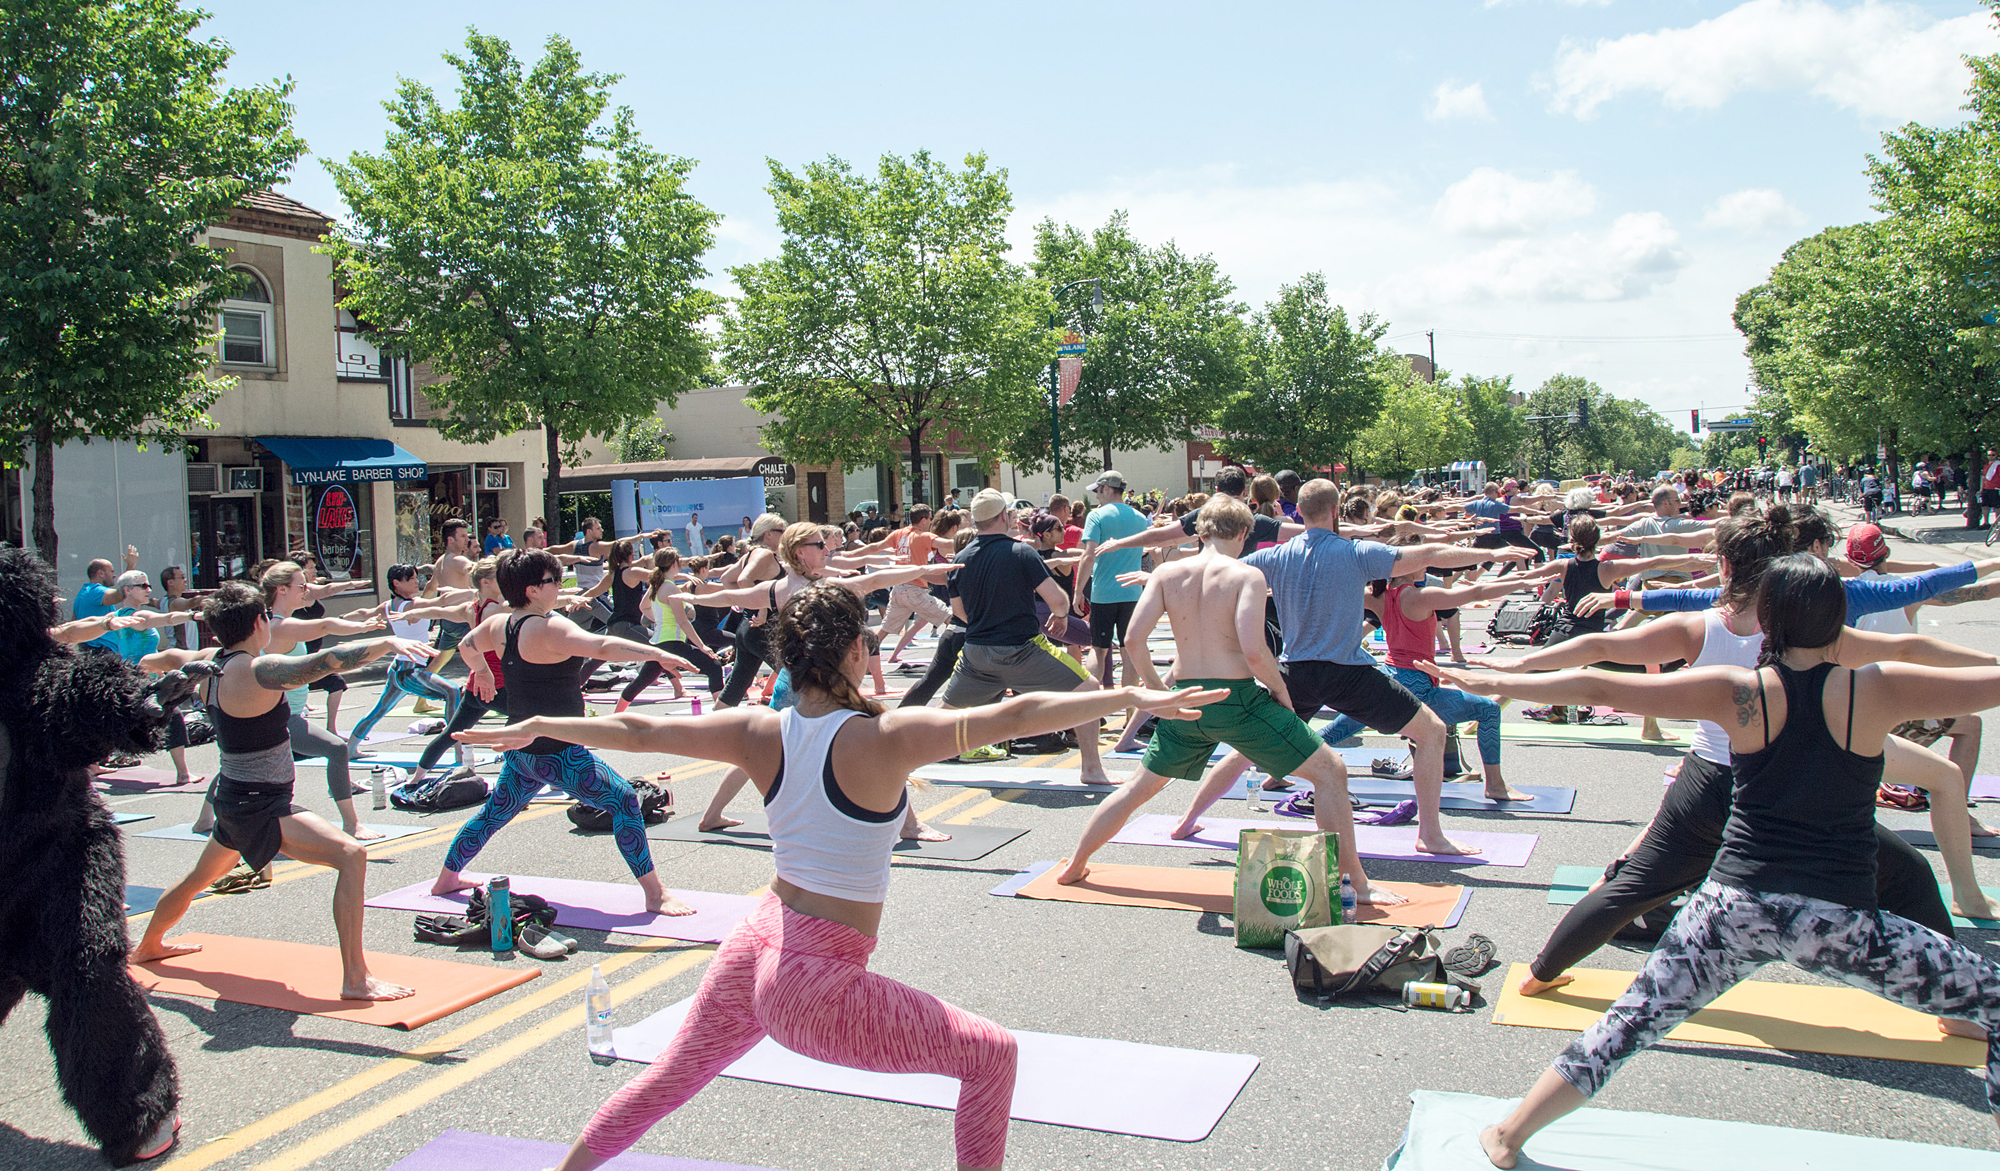 People perform yoga in the middle of Lyndale Avenue during an Open Streets event.